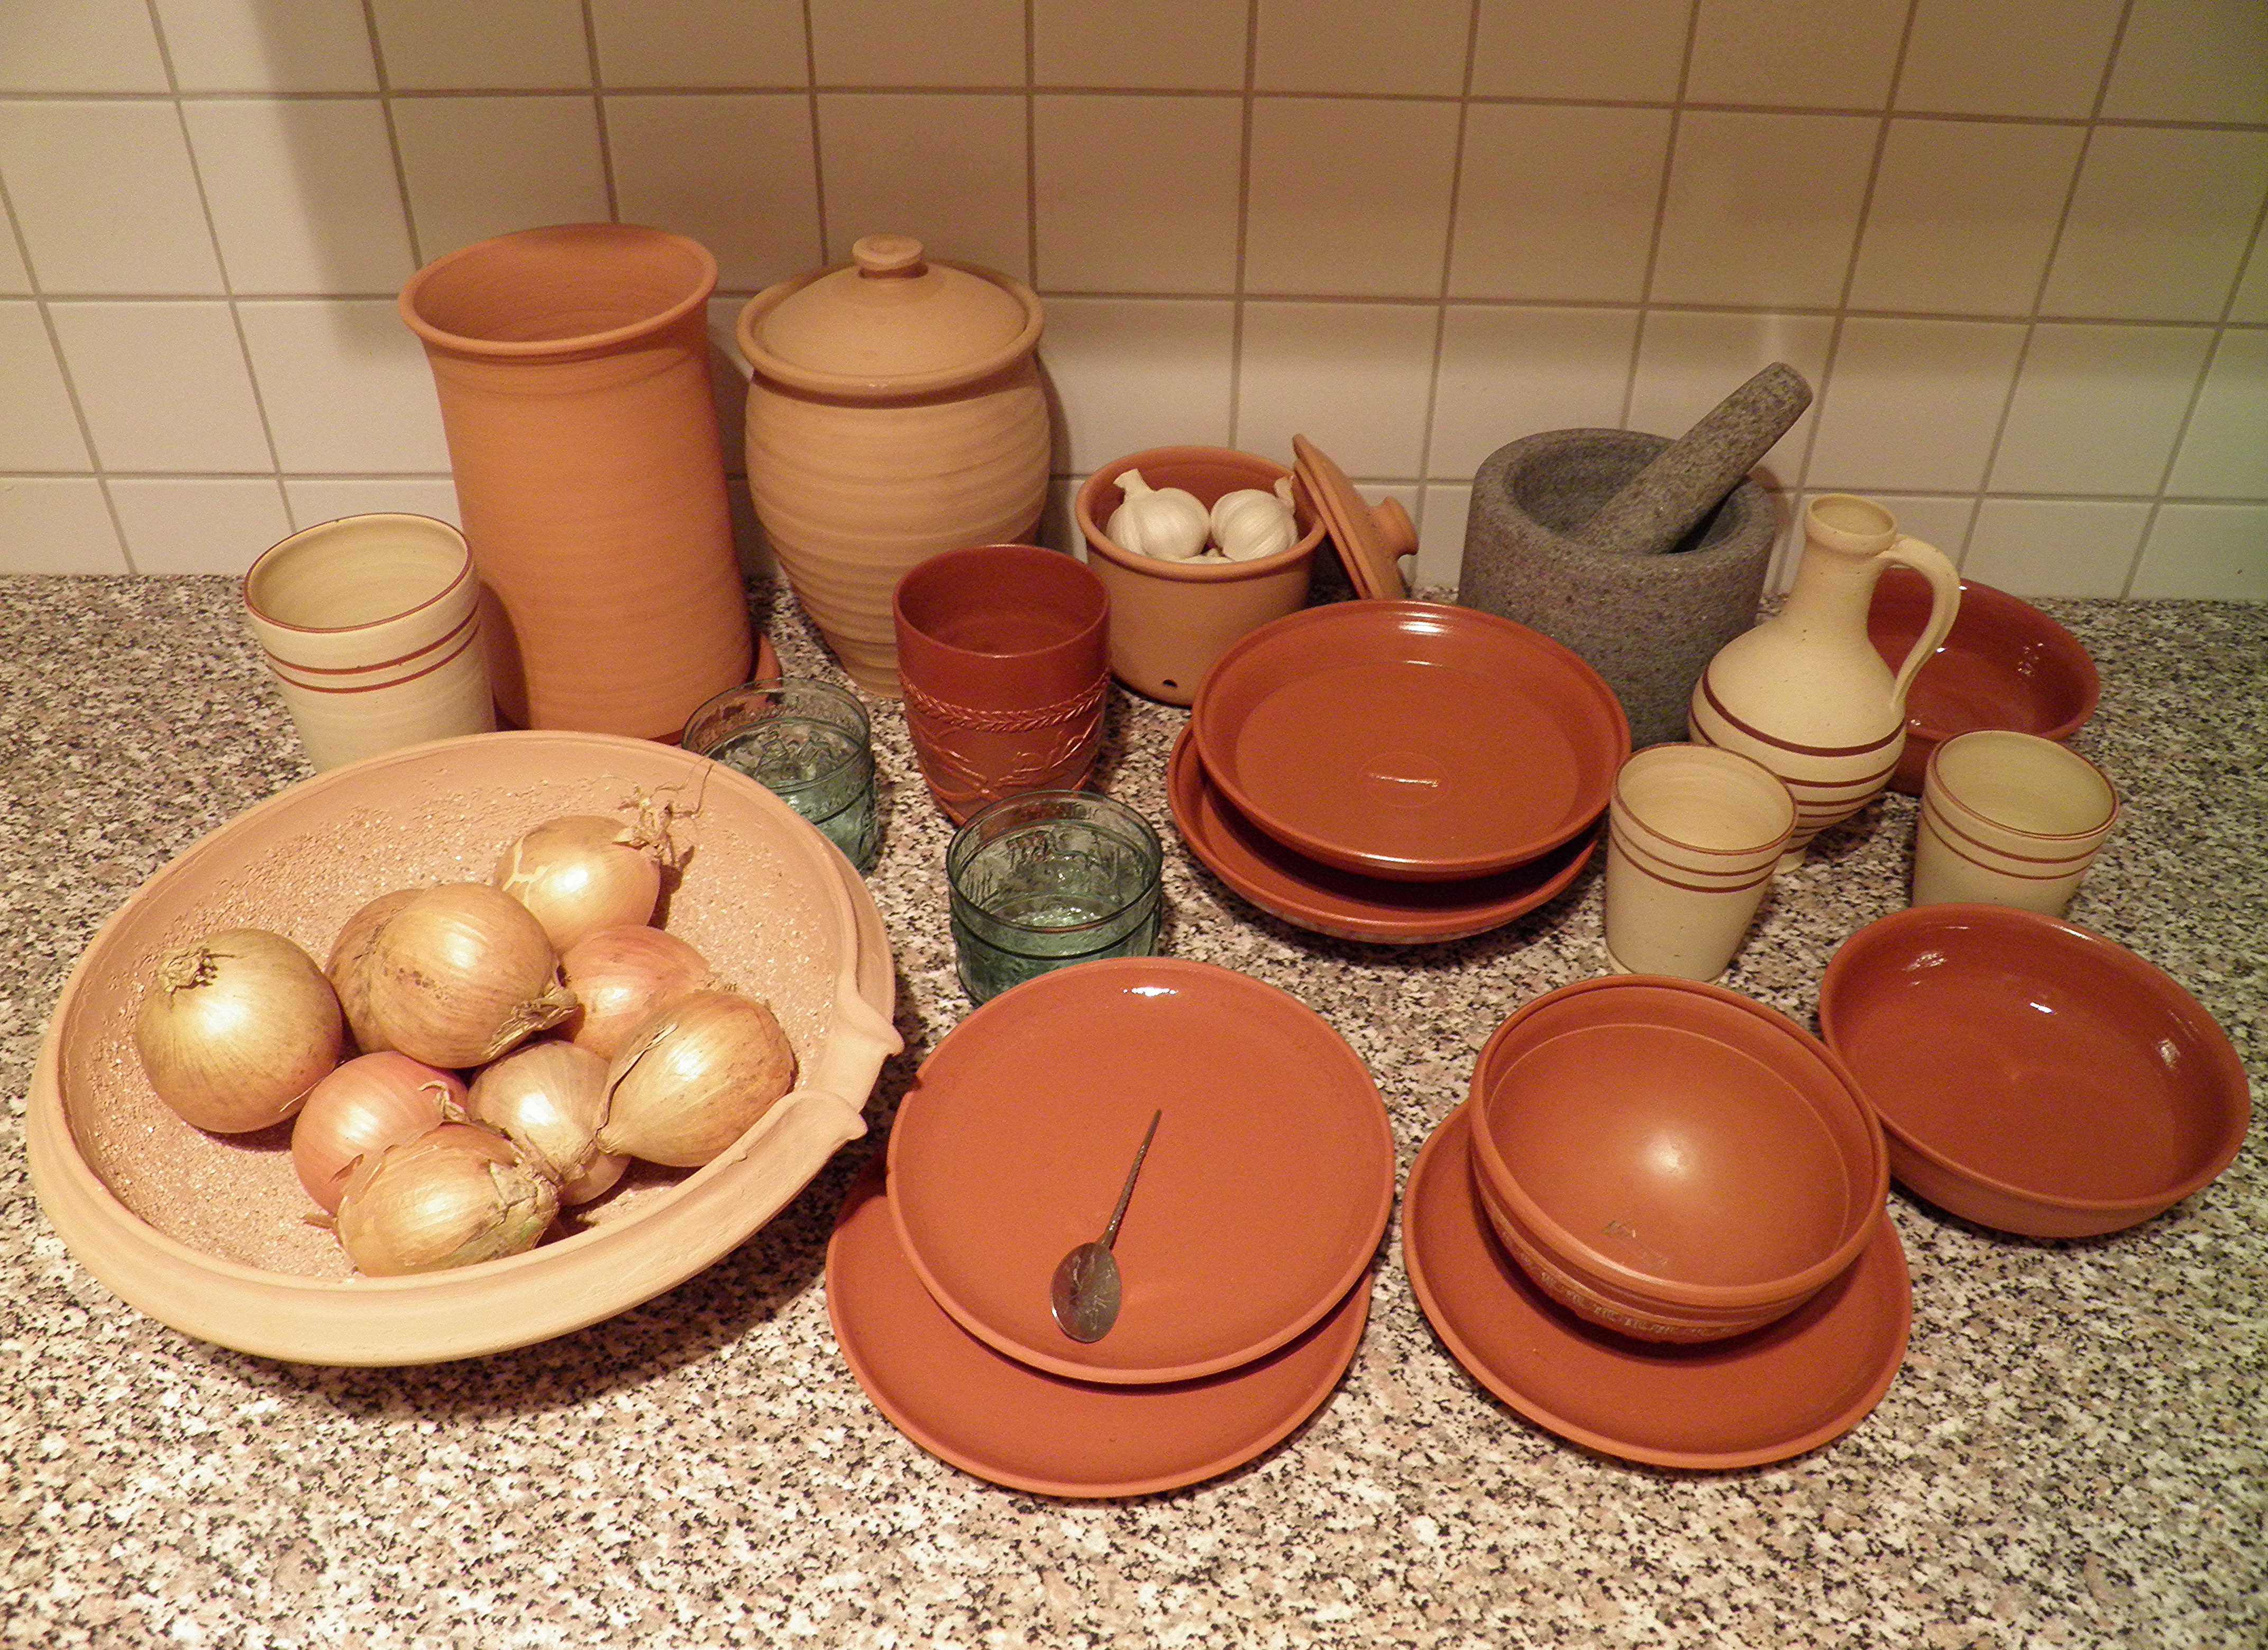 FileCollection of Roman pottery tableware replica (8409123082).jpg & File:Collection of Roman pottery tableware replica (8409123082).jpg ...